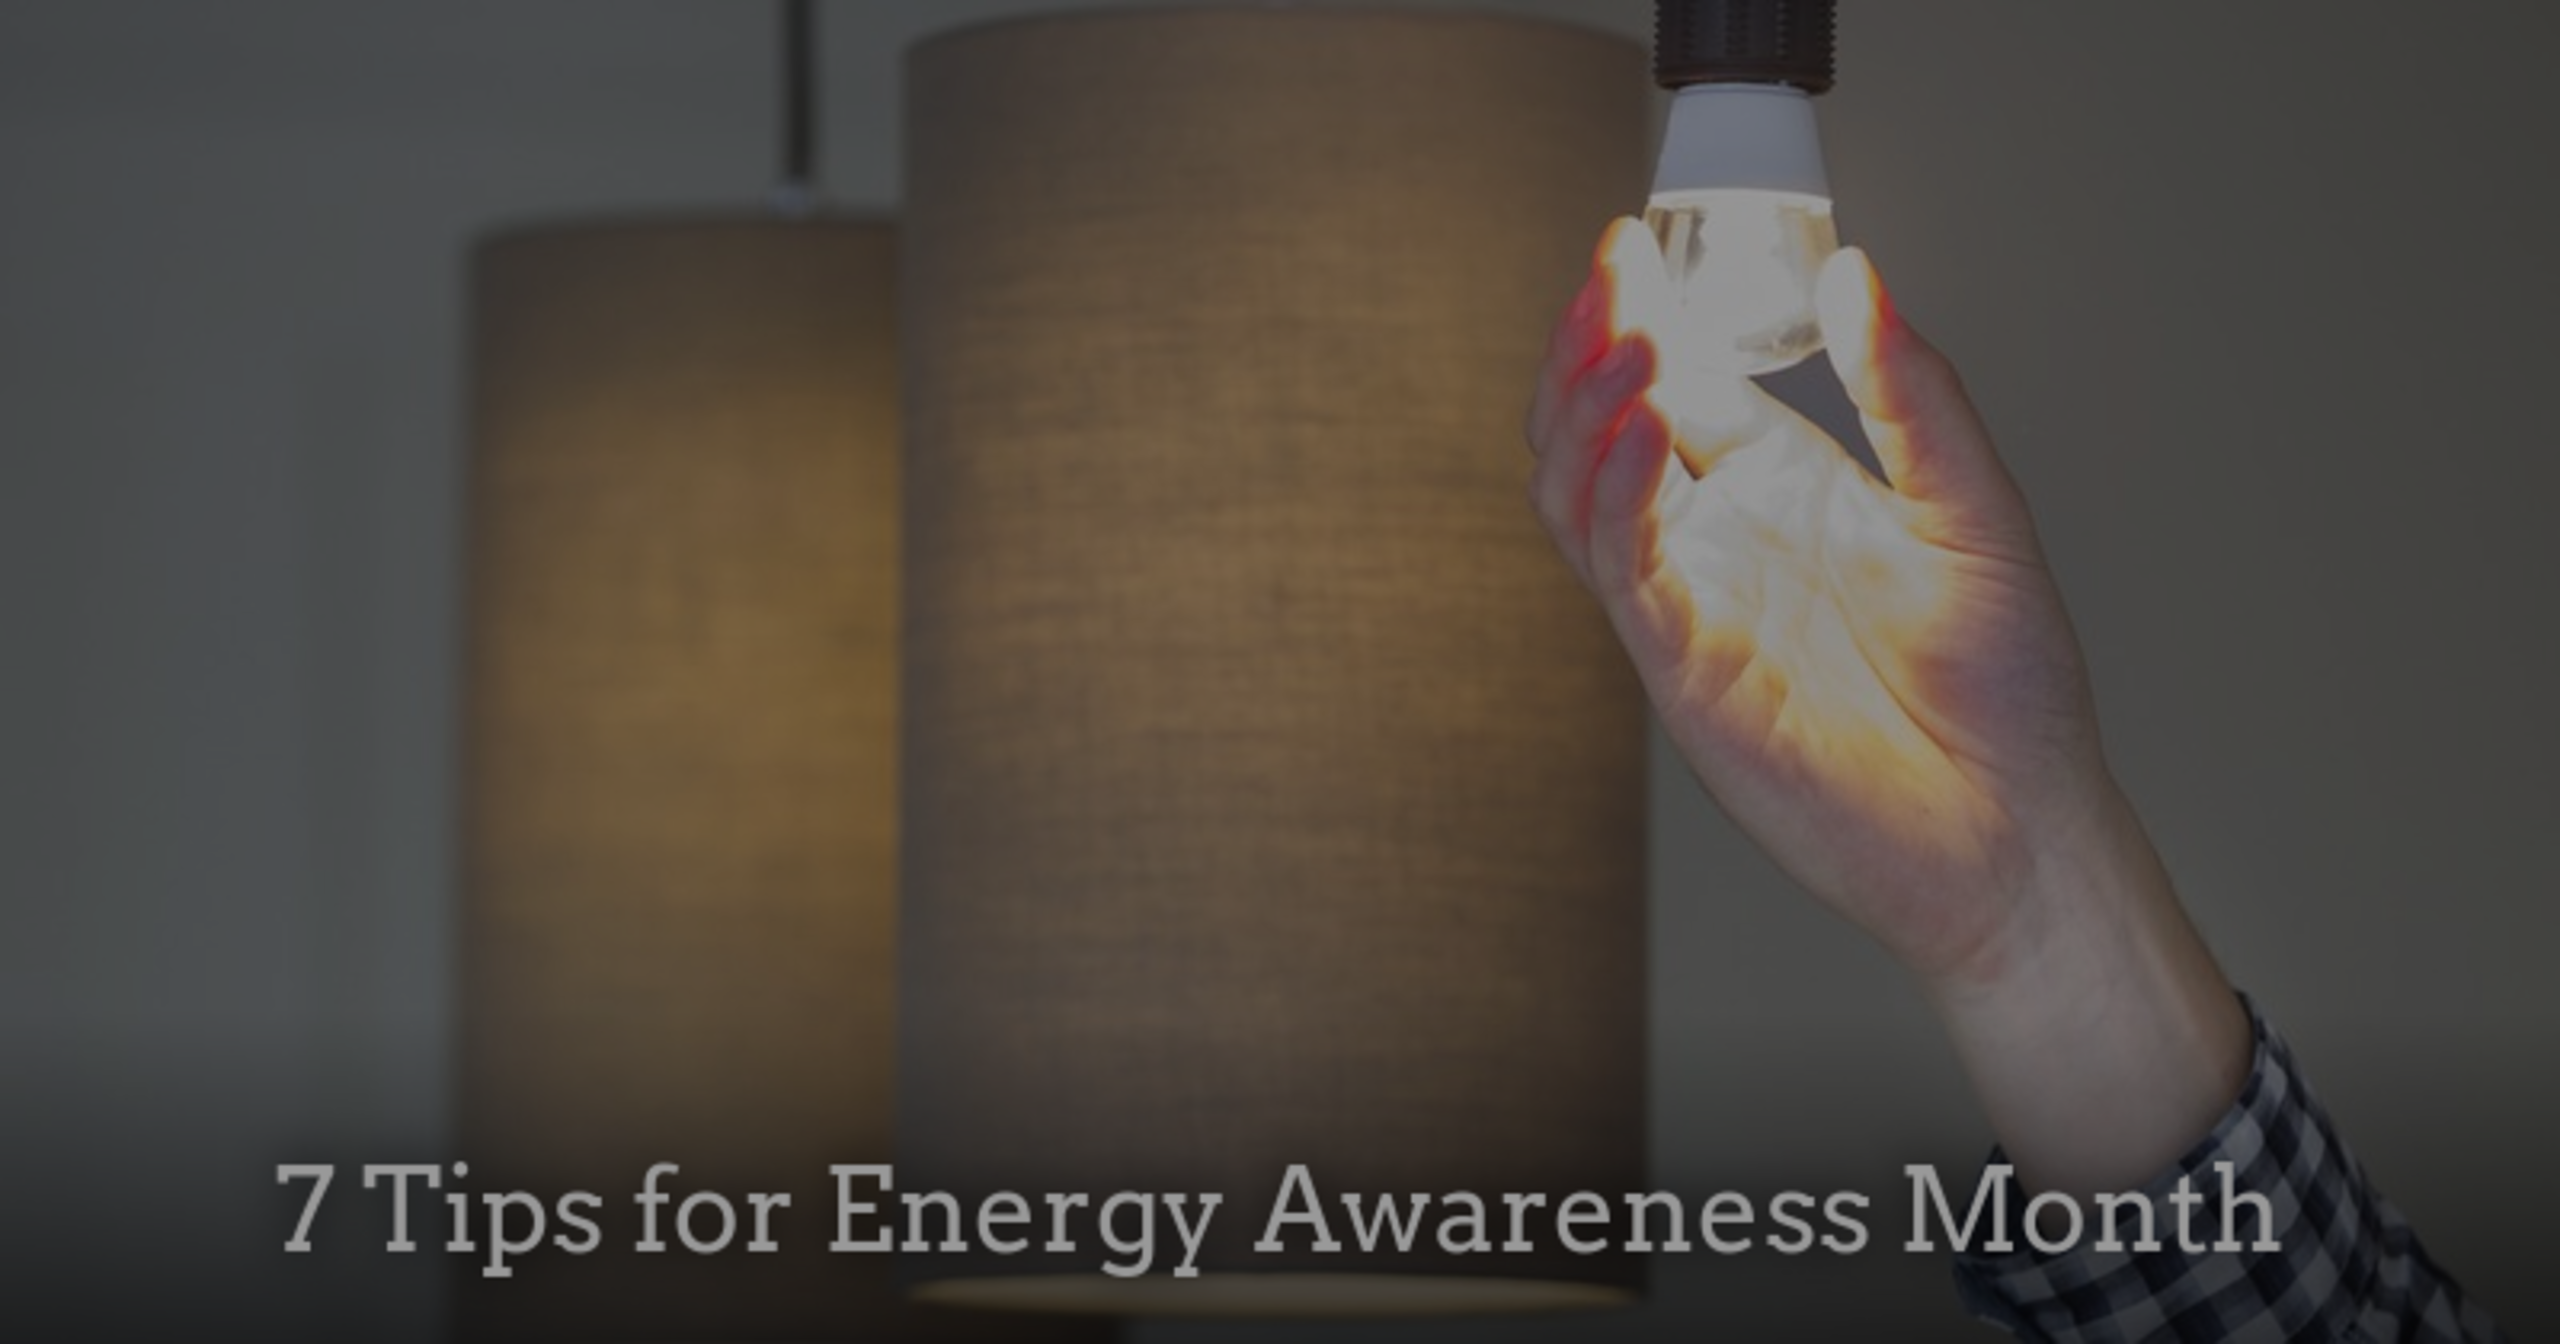 7 Tips for Energy Awareness Month